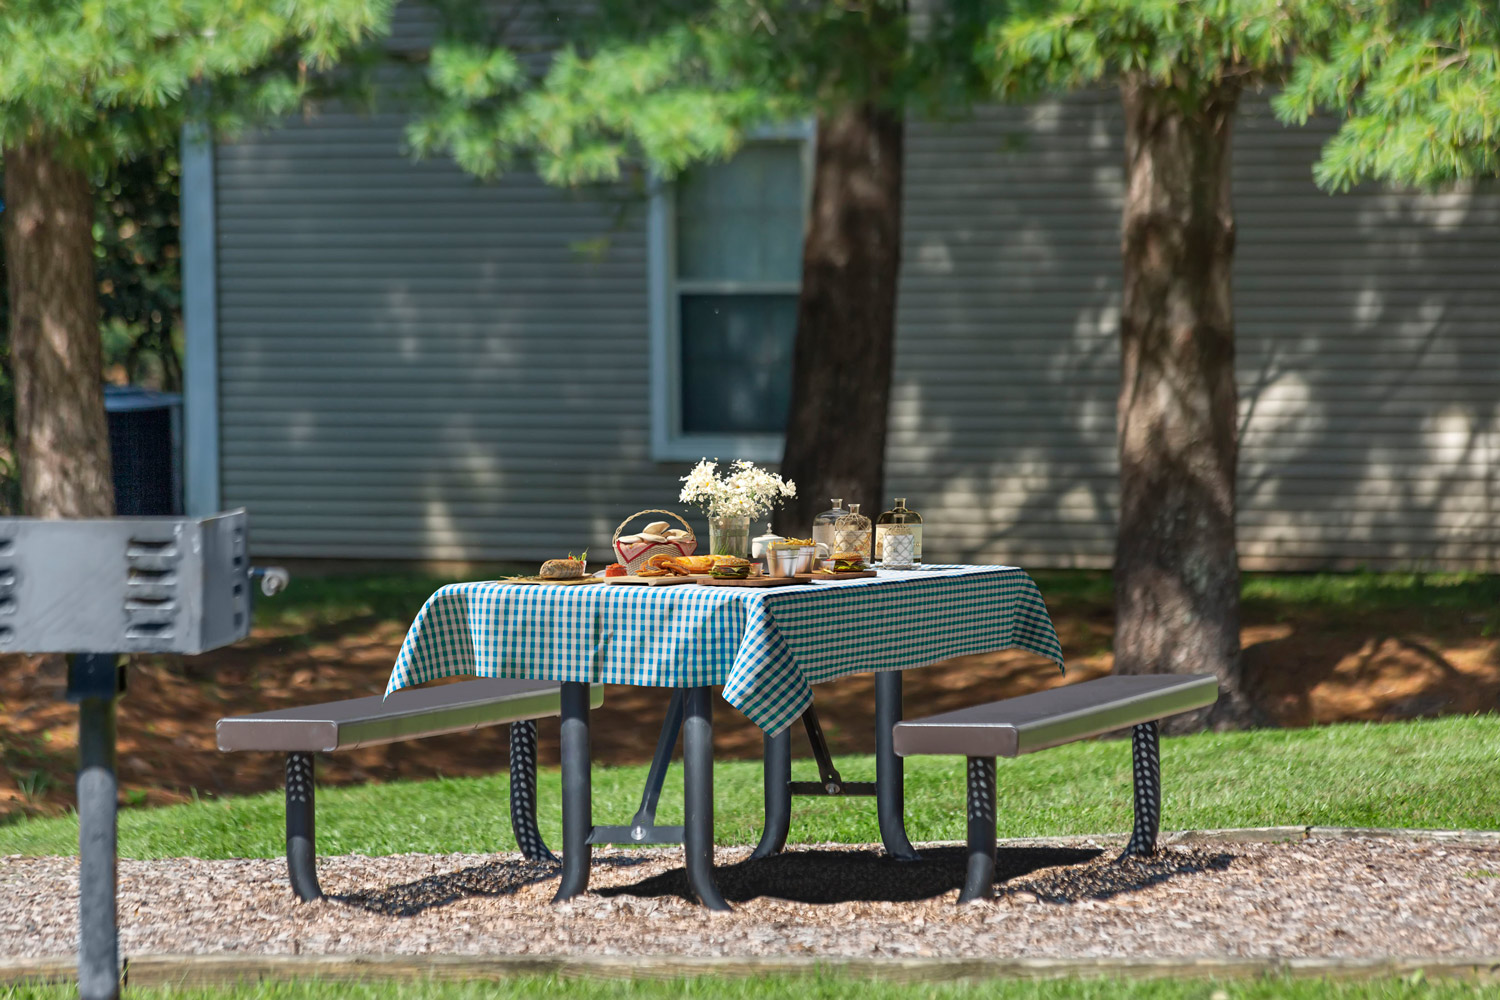 Onsite picnic area with grills at Seneca Club Apartments in Germantown, MD